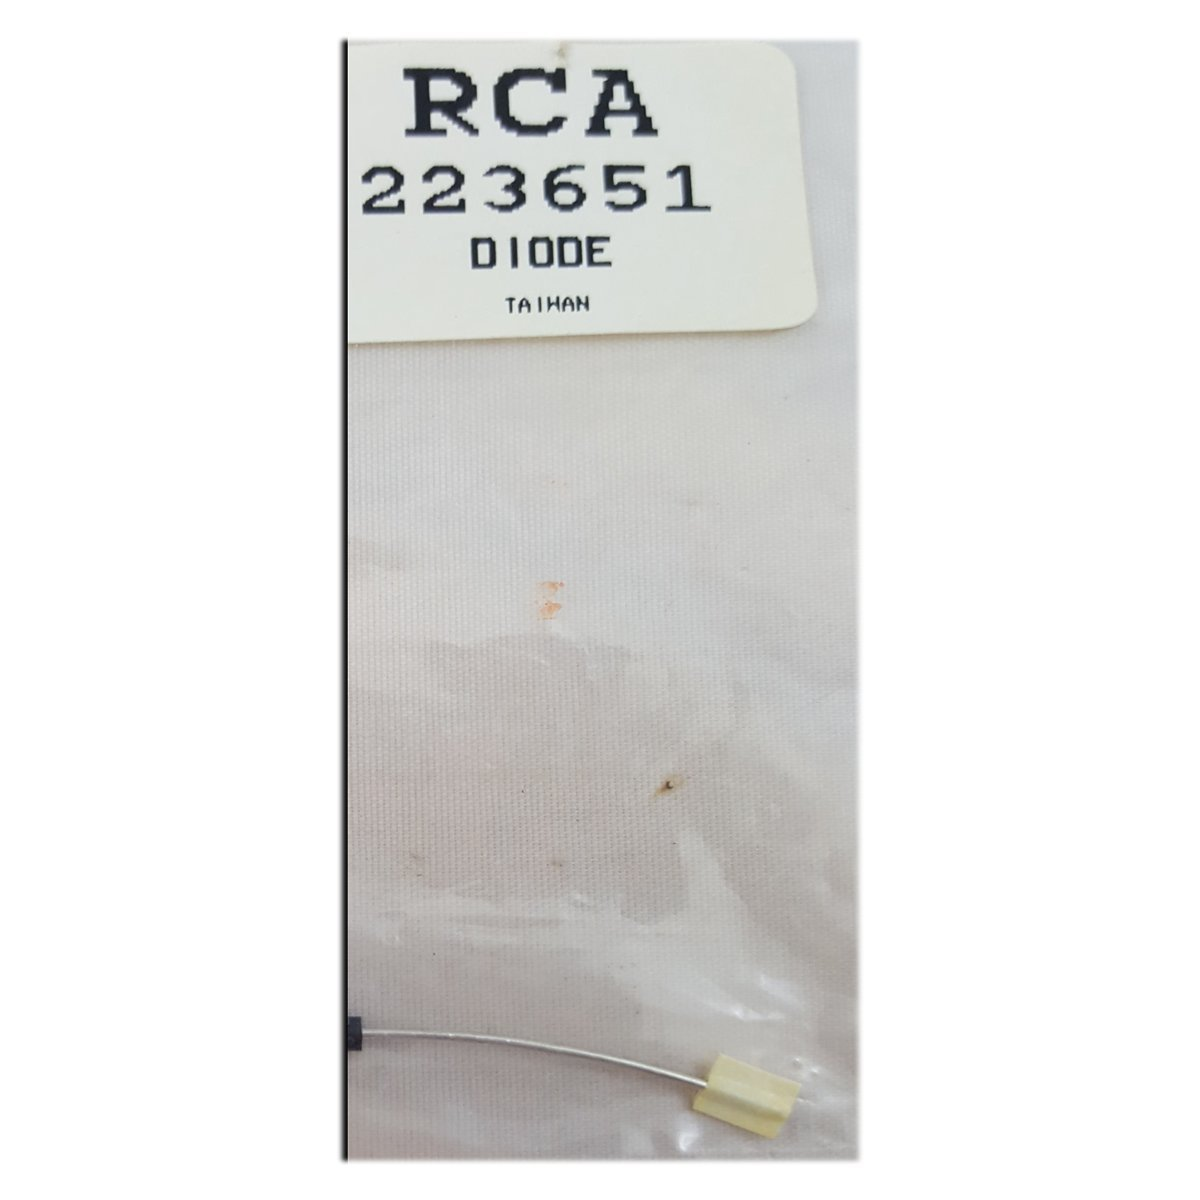 RCA VCR Replacement Part Diode No. 223651